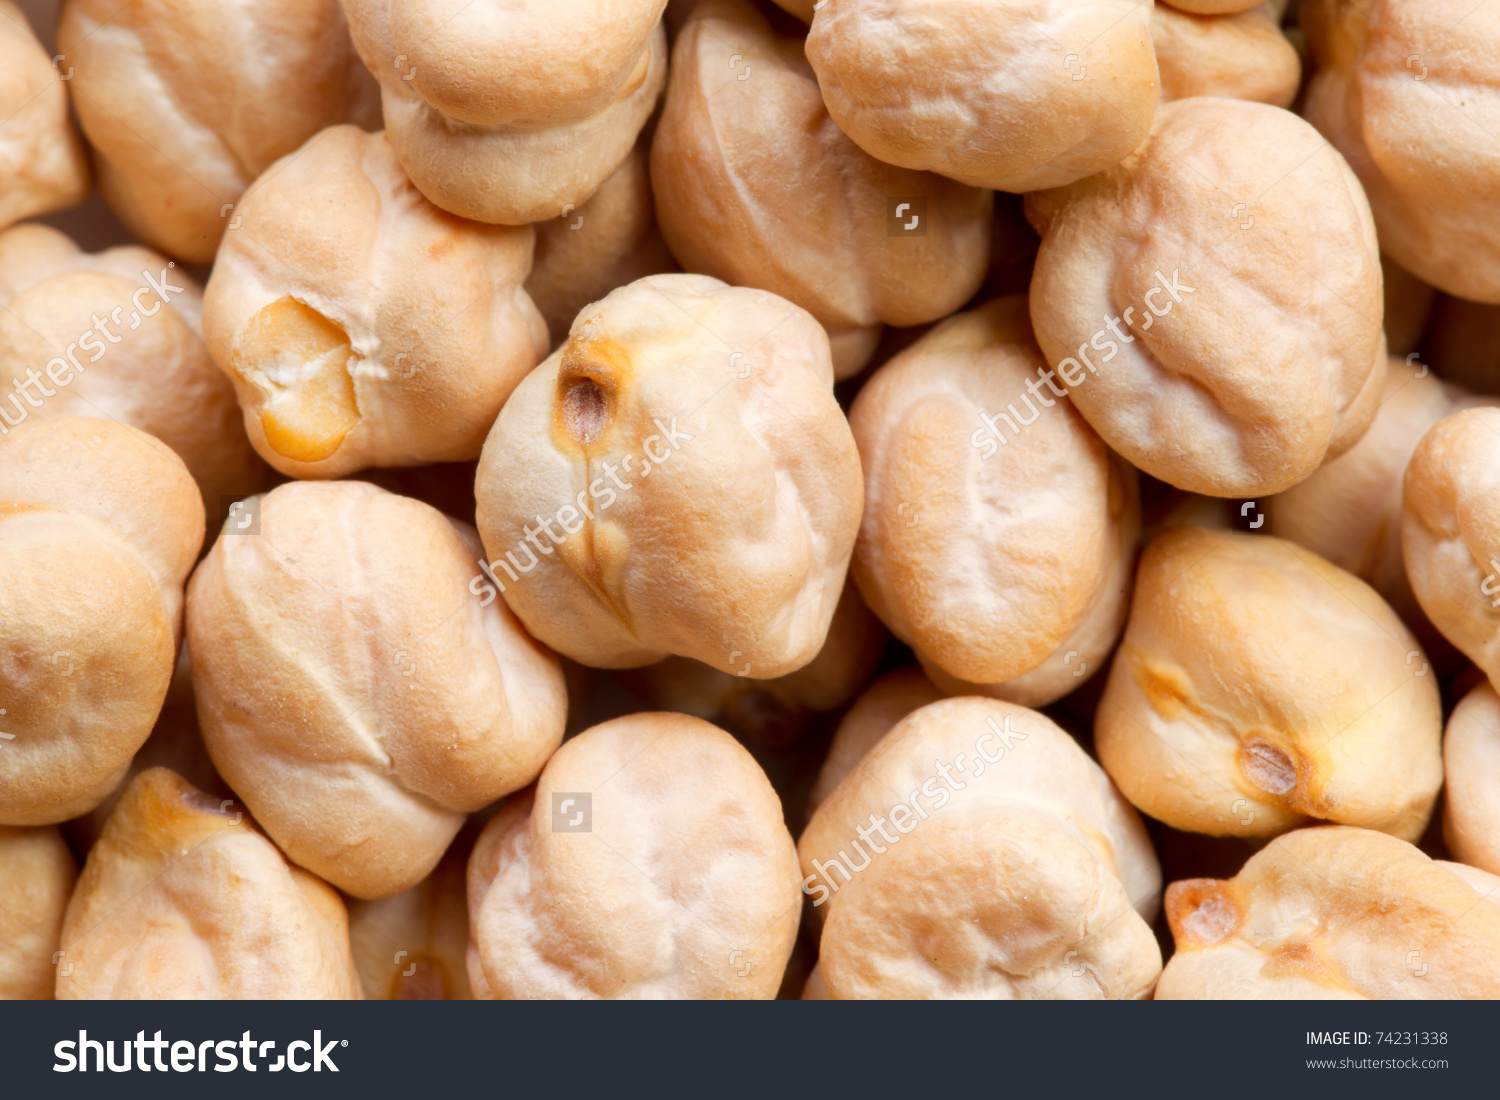 Chickpea Cicer Arietinum Garbanzo Bean Indian Stock Photo 74231338.